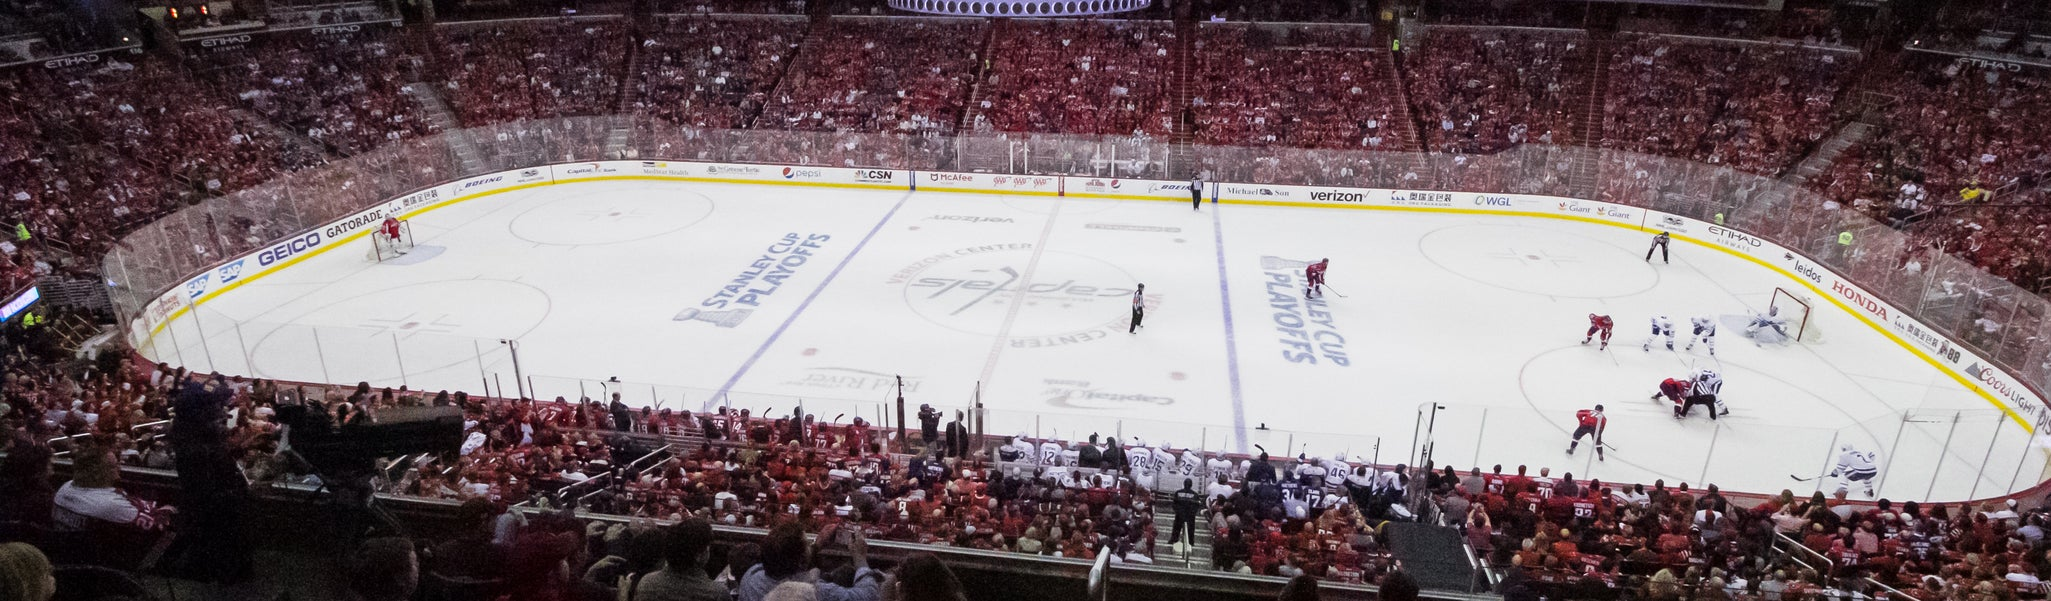 Seat view from Acela Level Center 201 at Capital One Arena